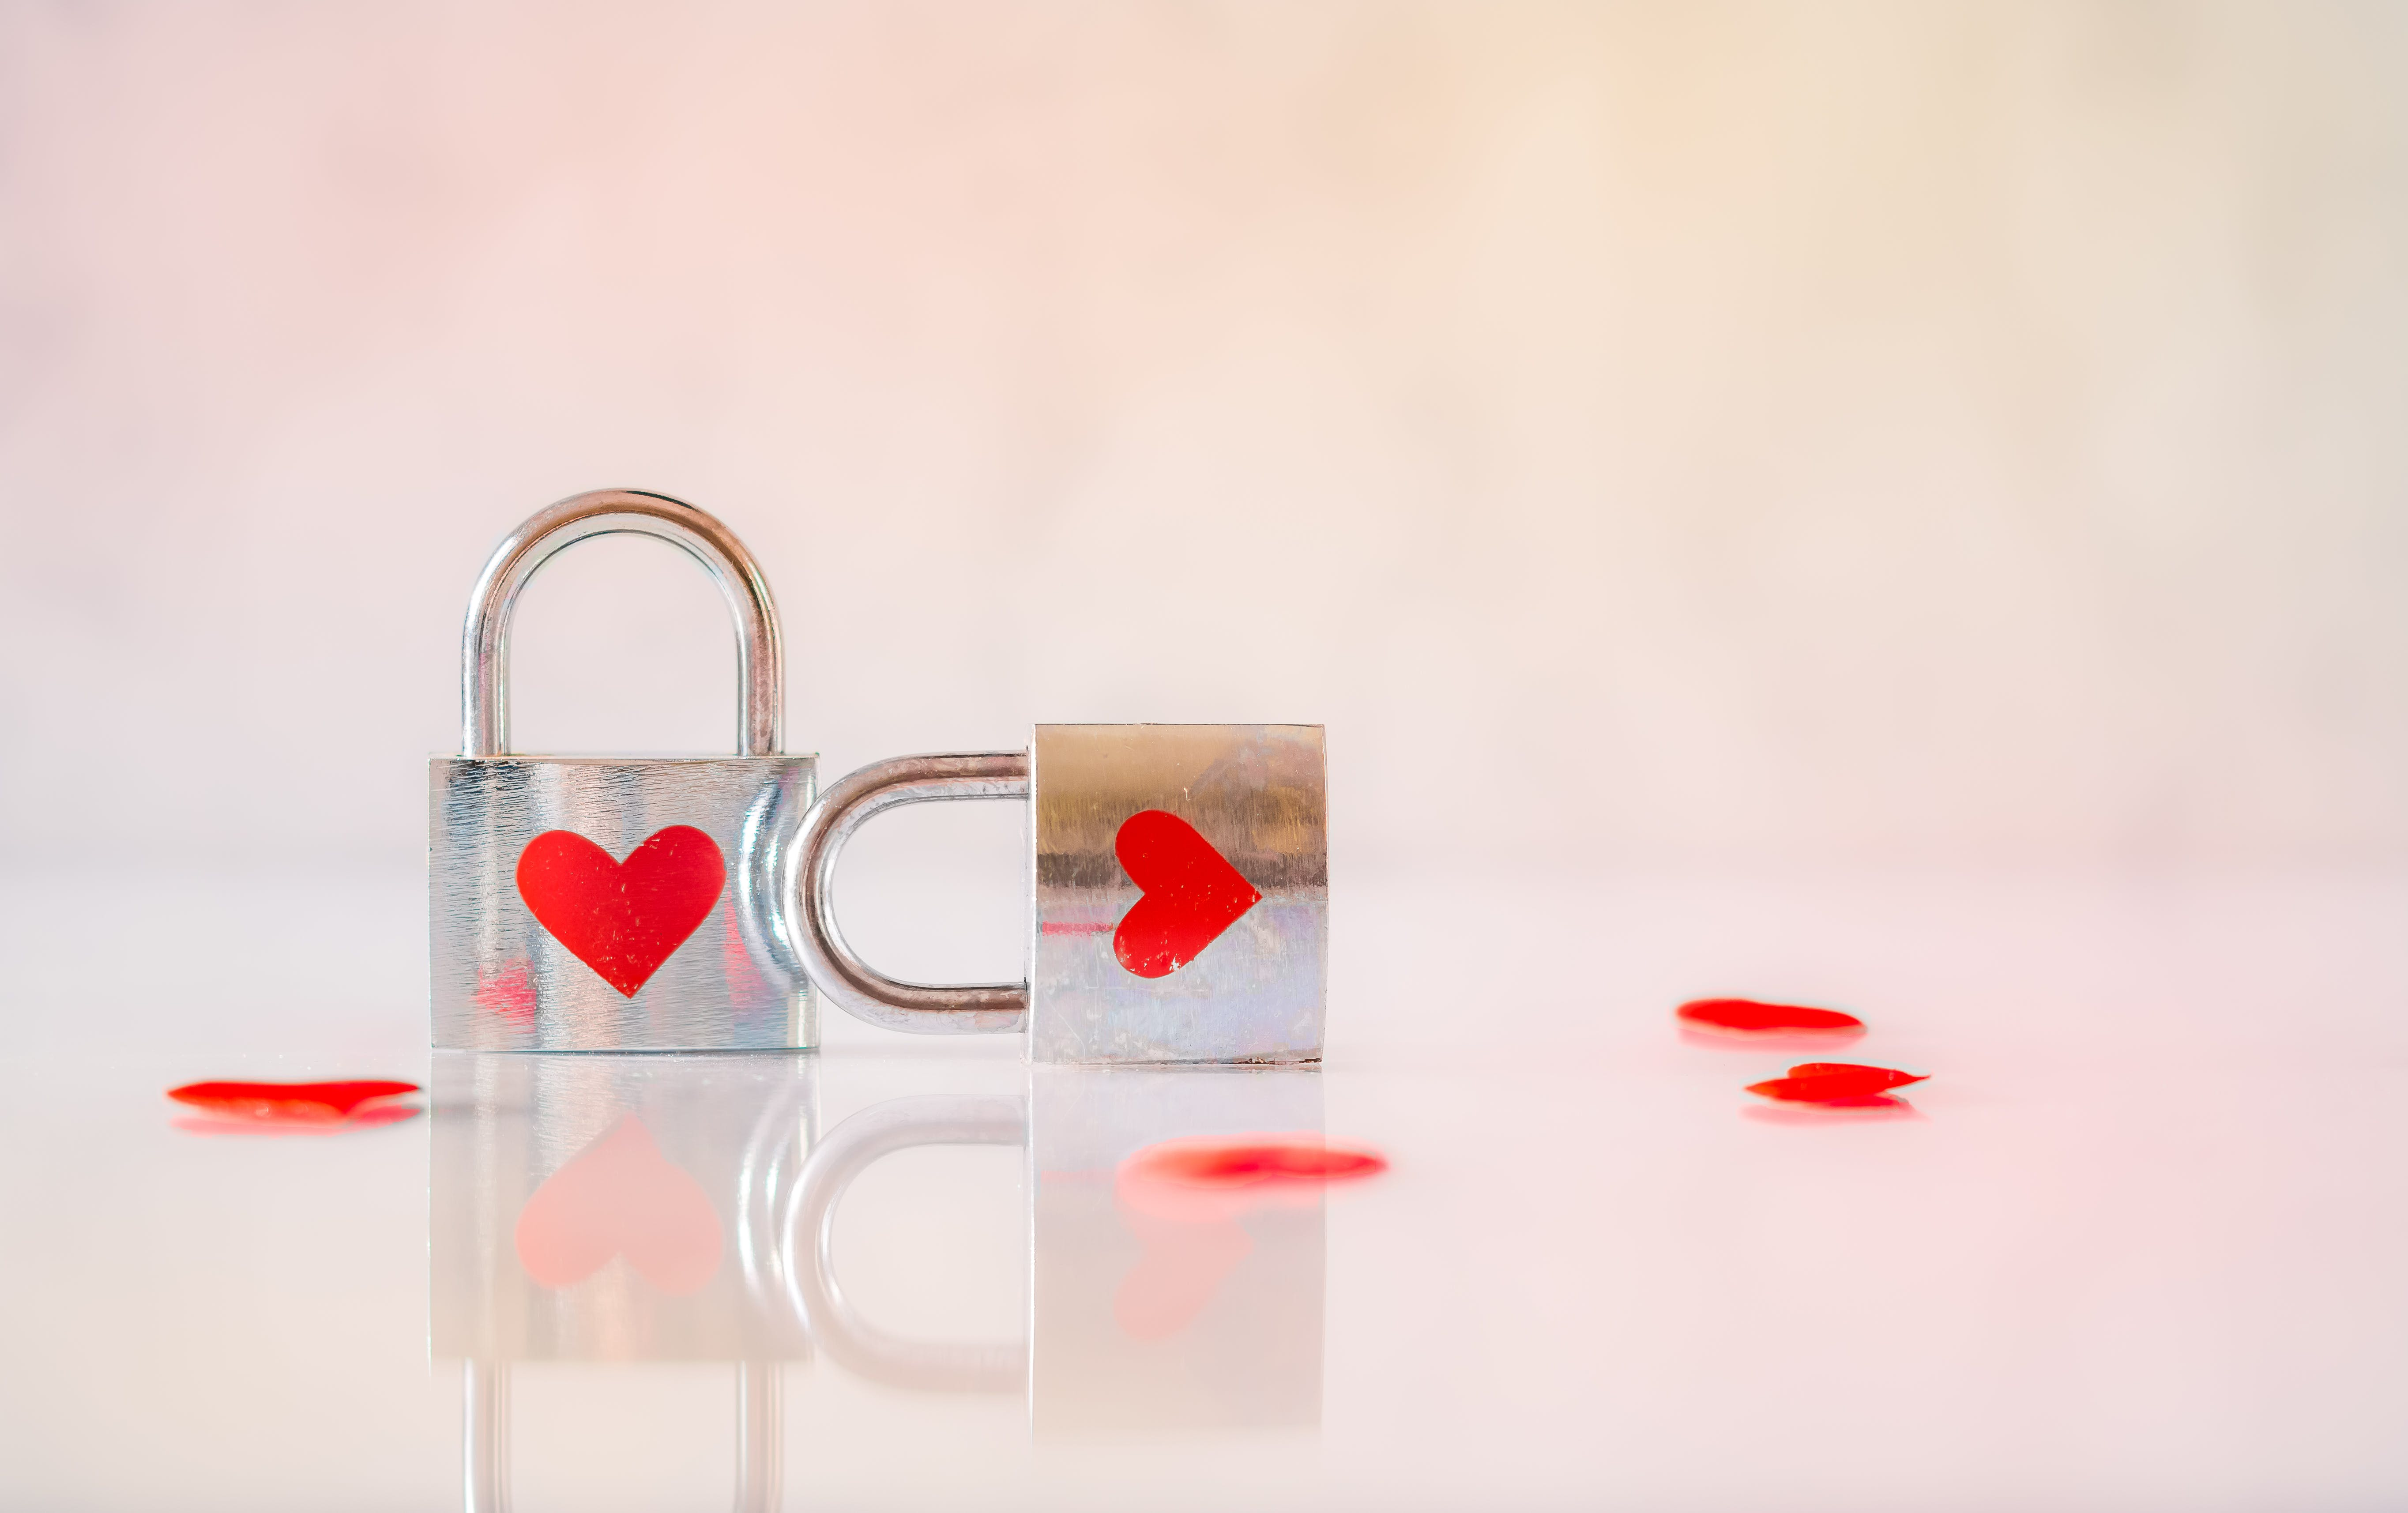 Two Stainless Steel Padlocks